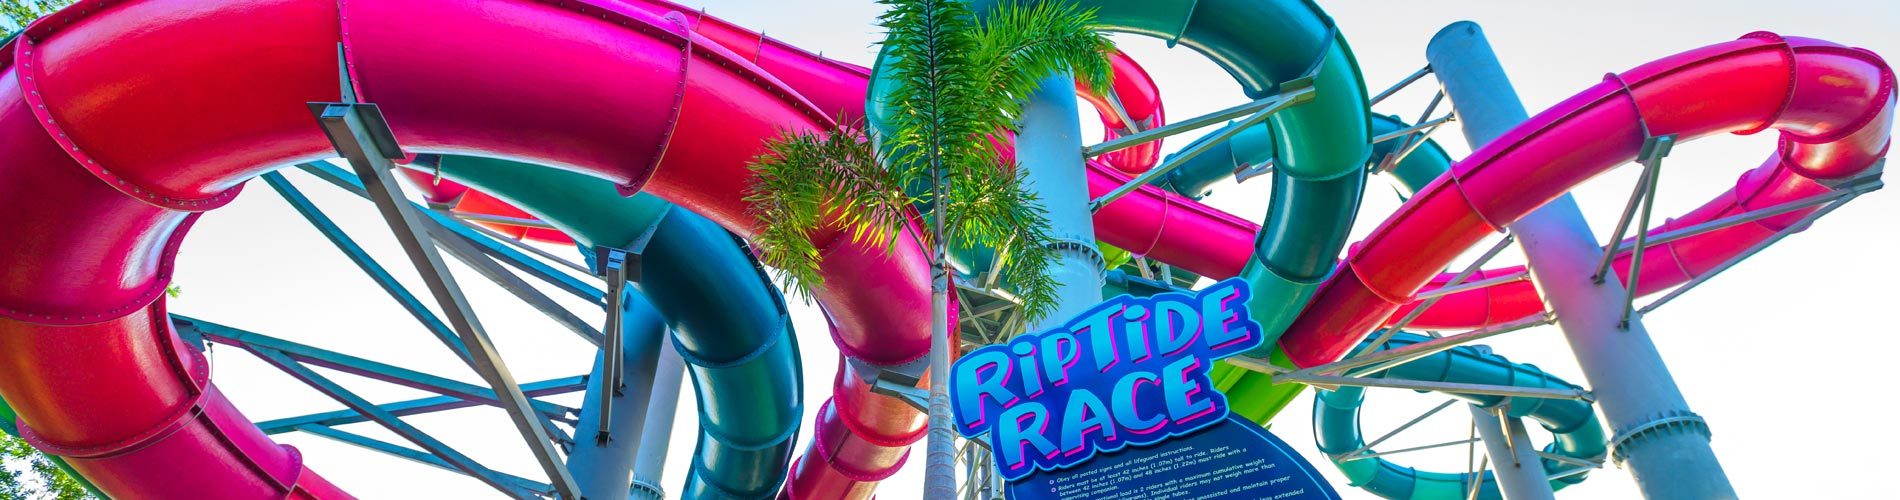 Riptide Race at Aquatica Orlando Now Open